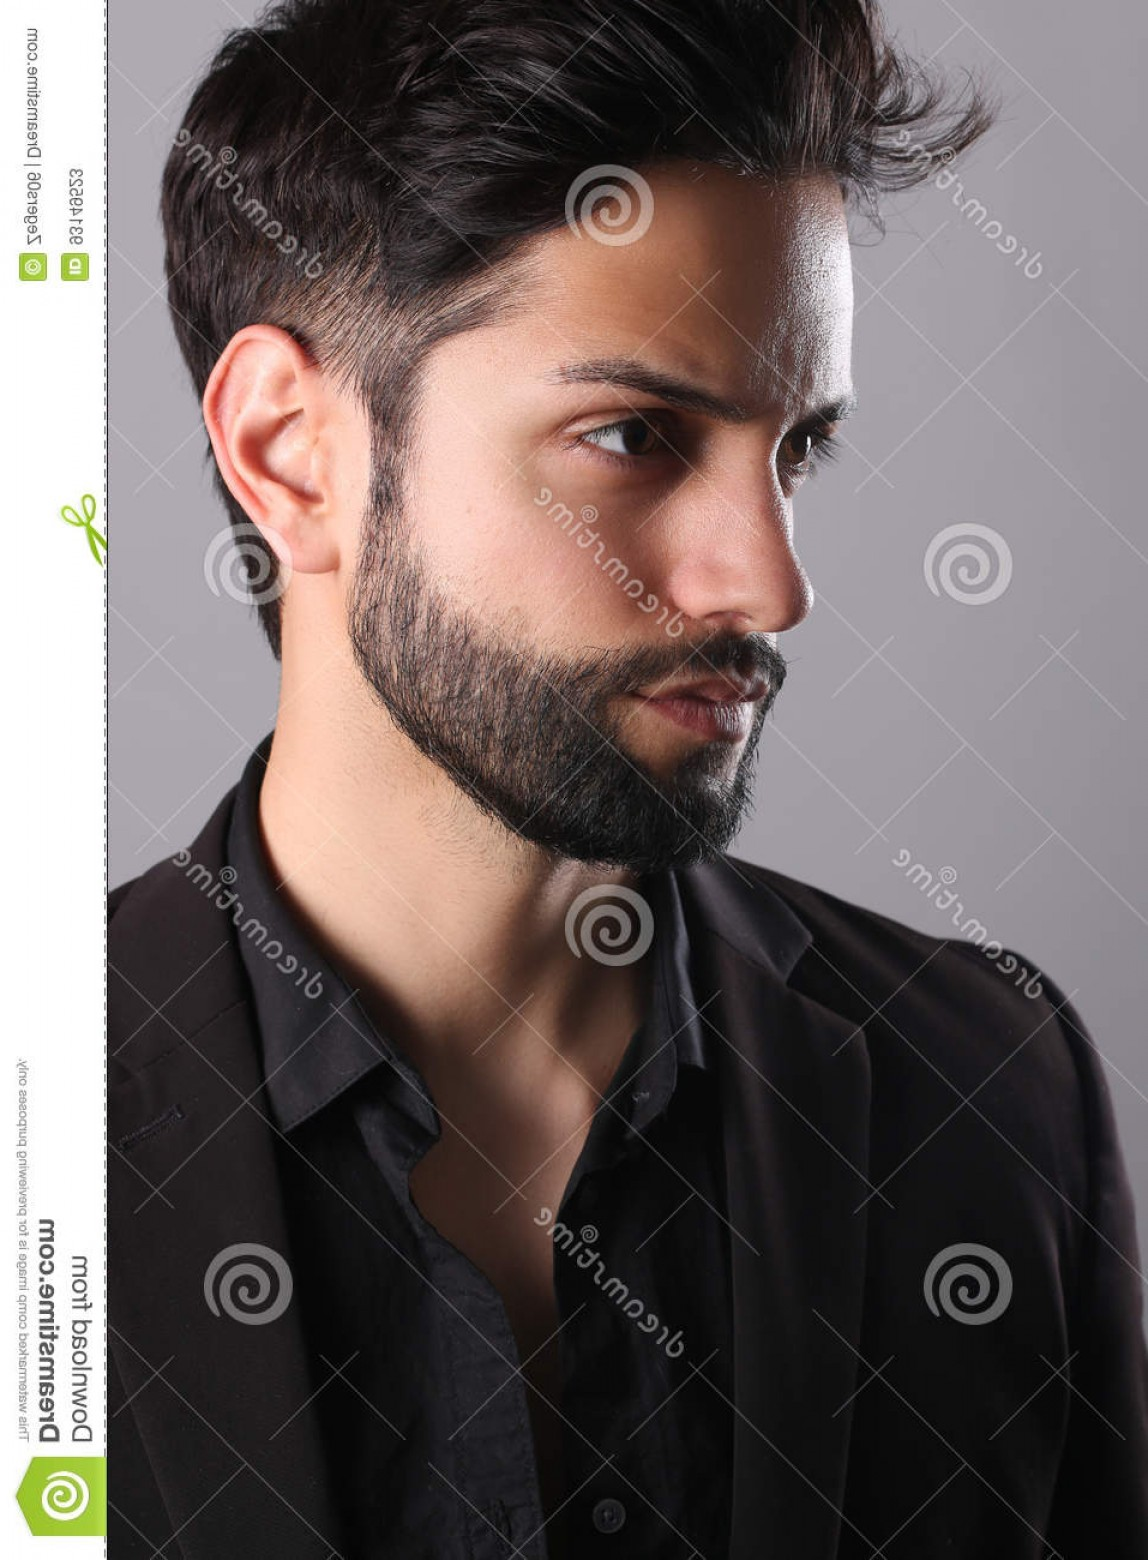 Vector Male Fade Hair: Stock Photo Handsome Man Low Fade Haircut White Background Image